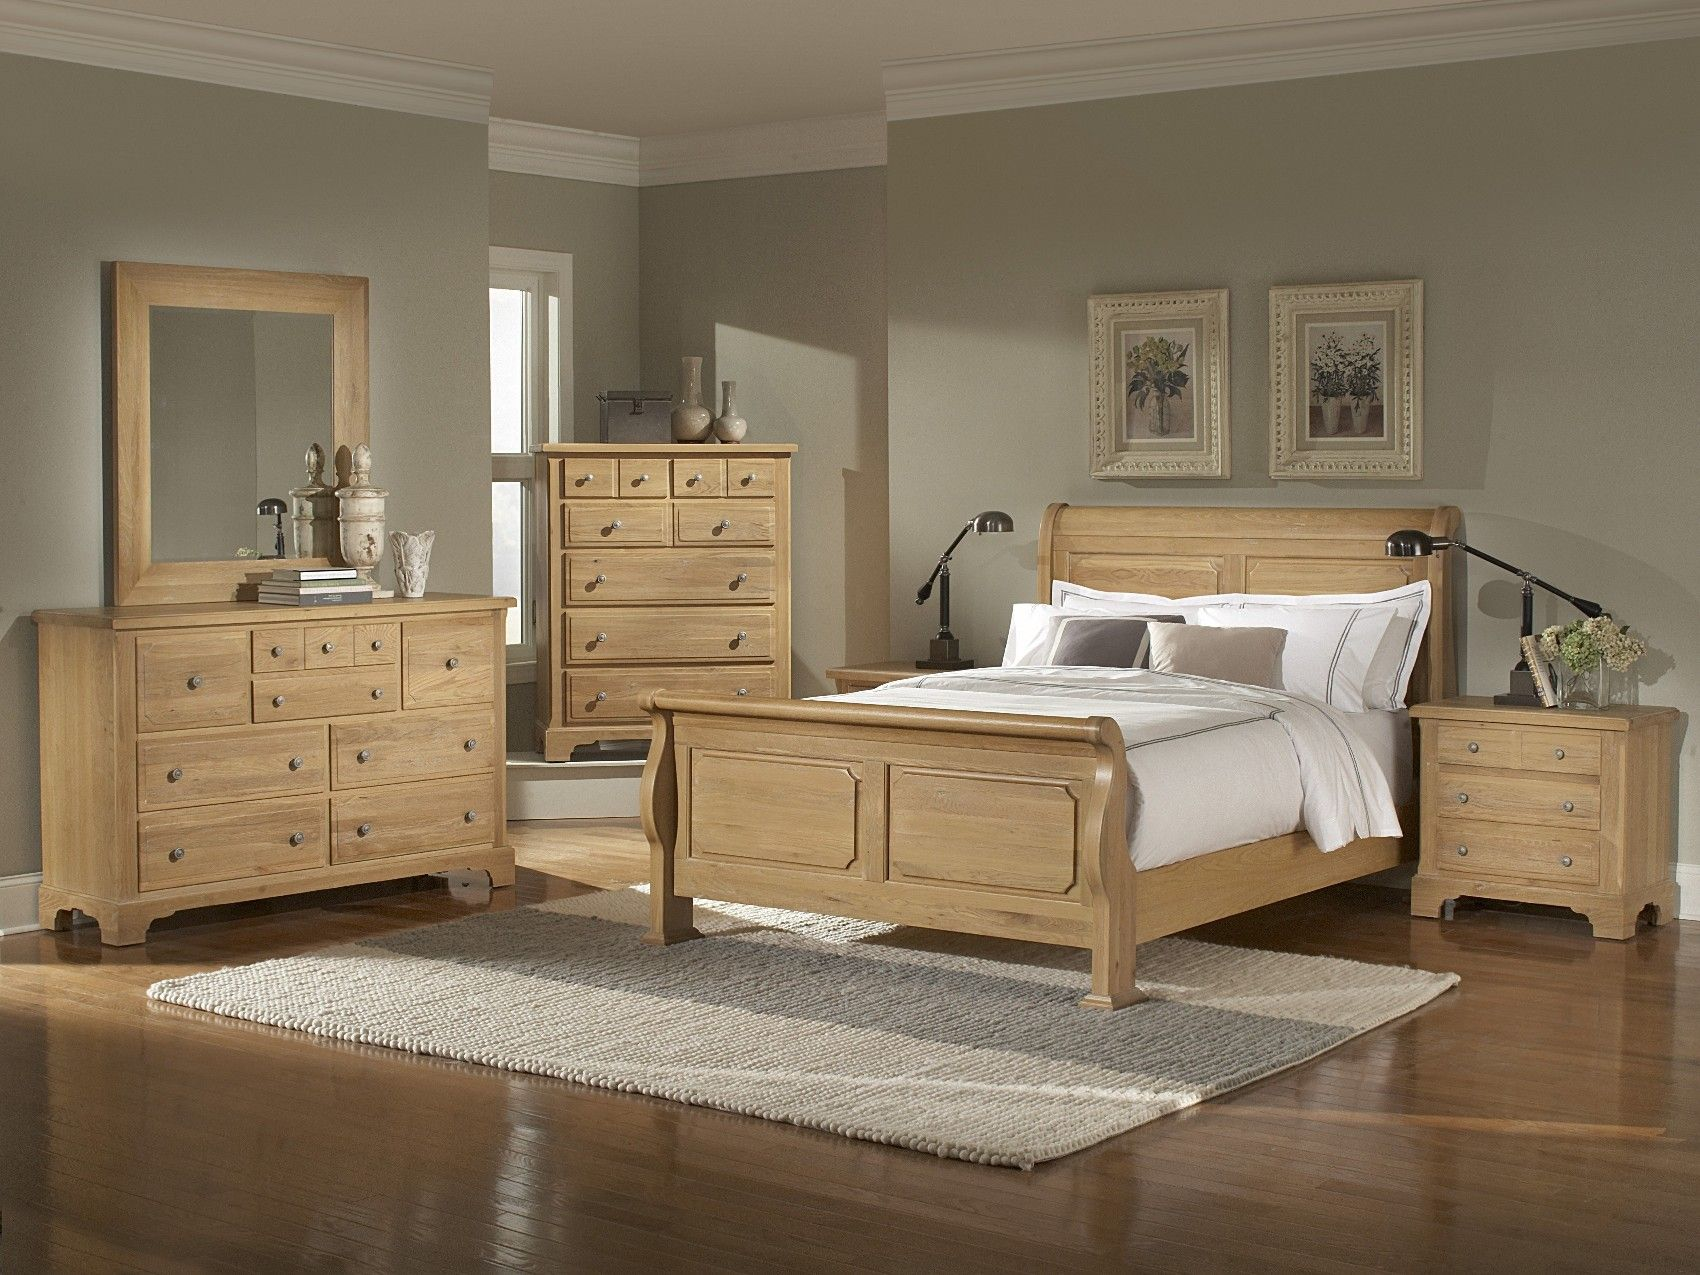 Wood bedroom furniture sets - Oak Bedroom Furniture Sets Washed Oak Queen Sleigh Bedroom Group A At